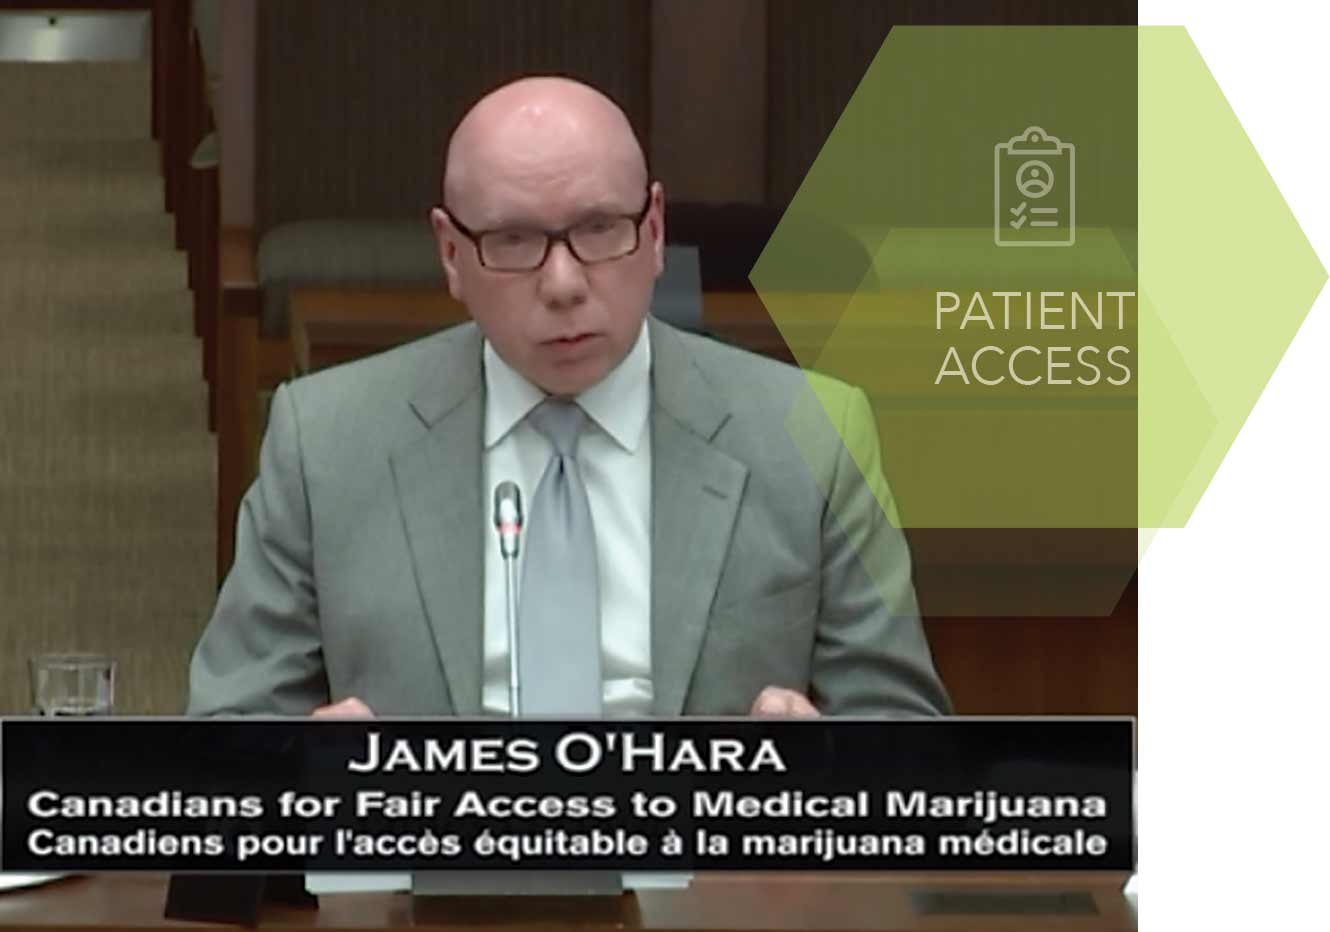 Where does the Cannabis Act leave medical cannabis patients, who depend on affordable access? CFAMM president and CEO James O'Hara, a patient himself, aims to ensure the rights of patients are heard at all government levels.  SUPPLIED